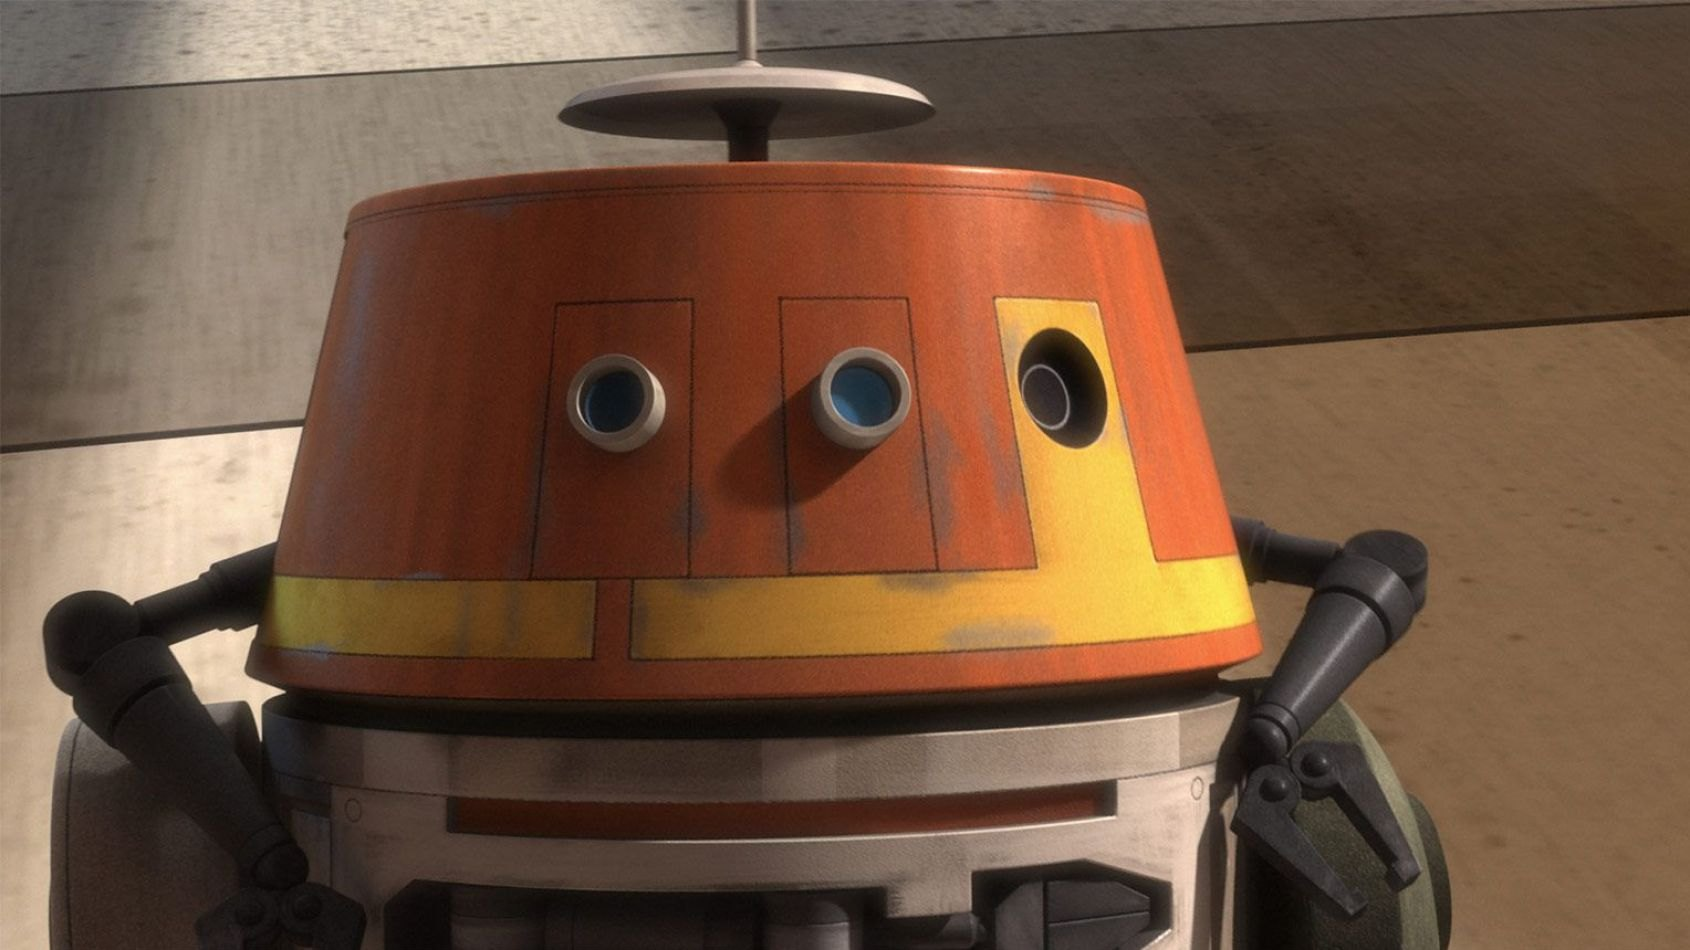 Focus sur le droïde Chopper de la série Star Wars Rebels